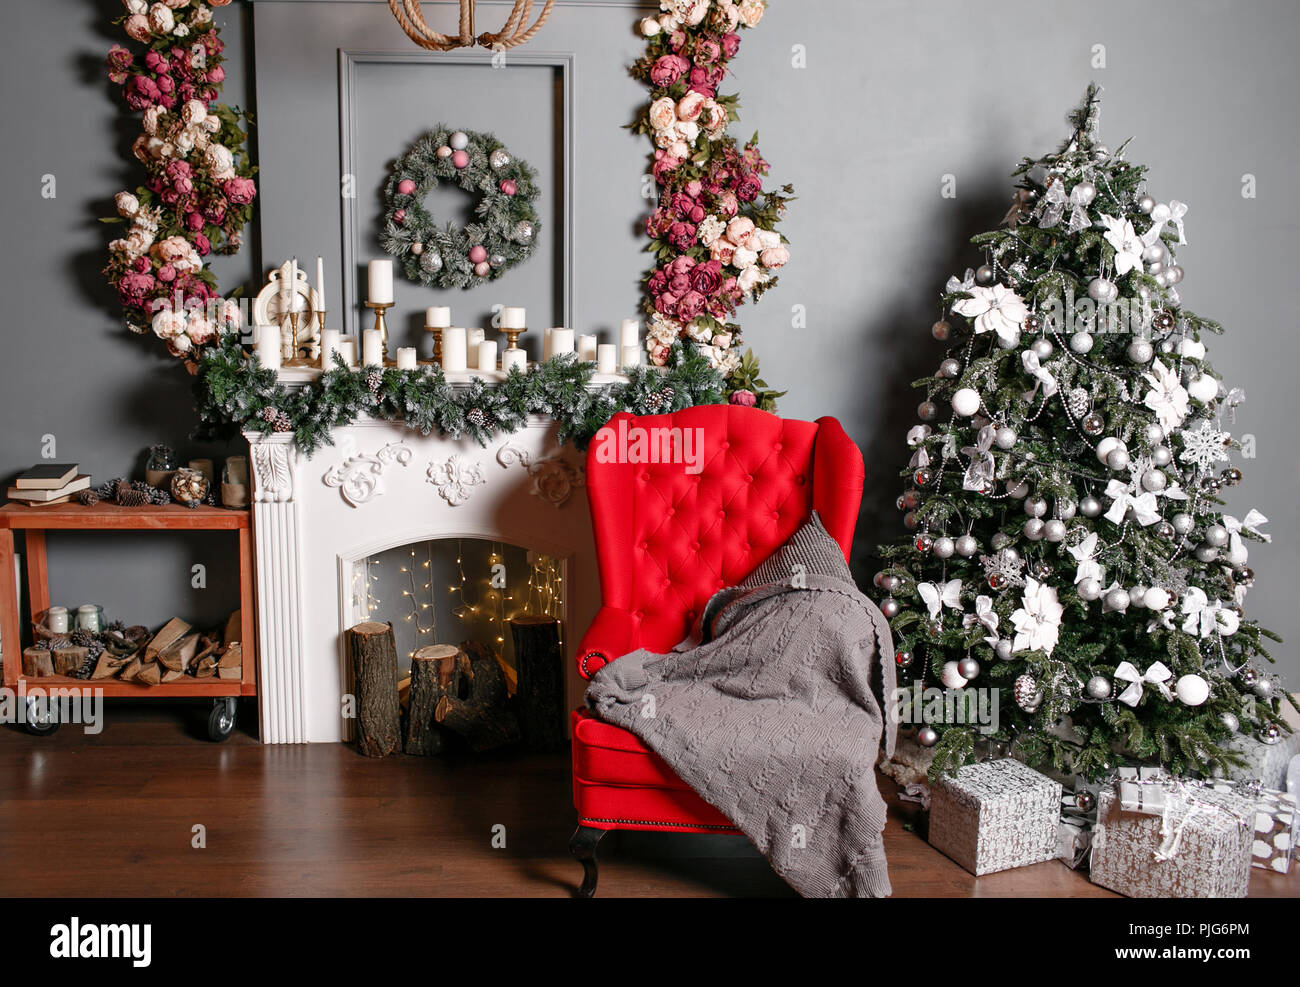 Merry Christmas and Happy Holidays. Beautiful holiday decorated room ...